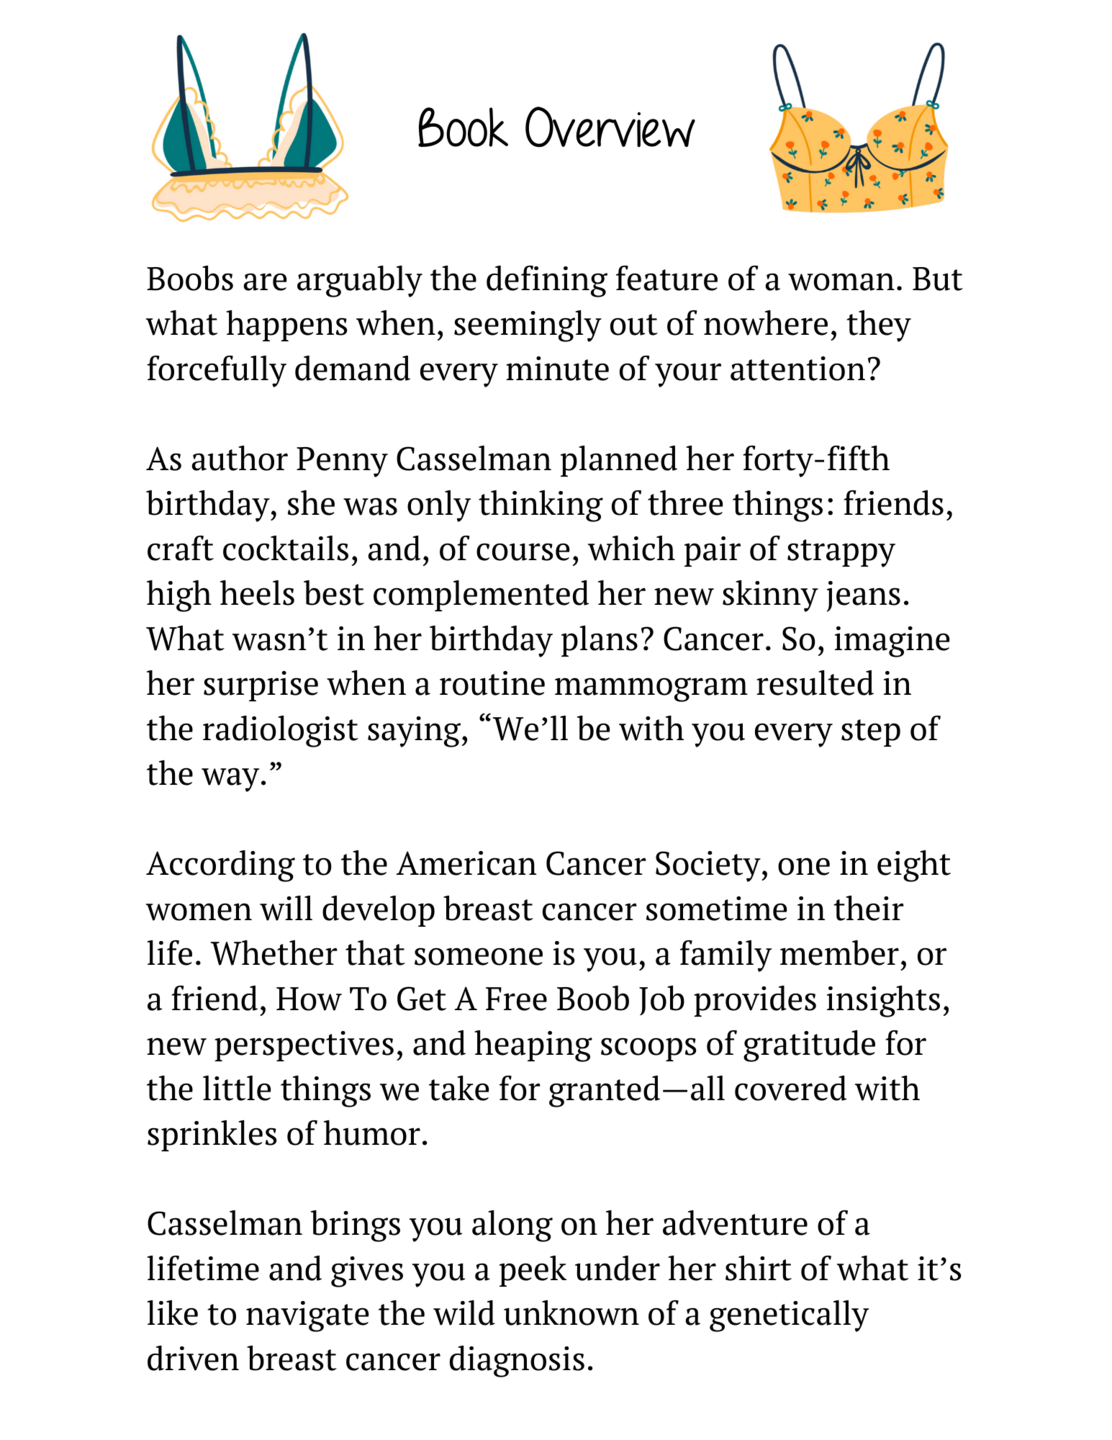 Book Overview for How To Get A Free Boob Job